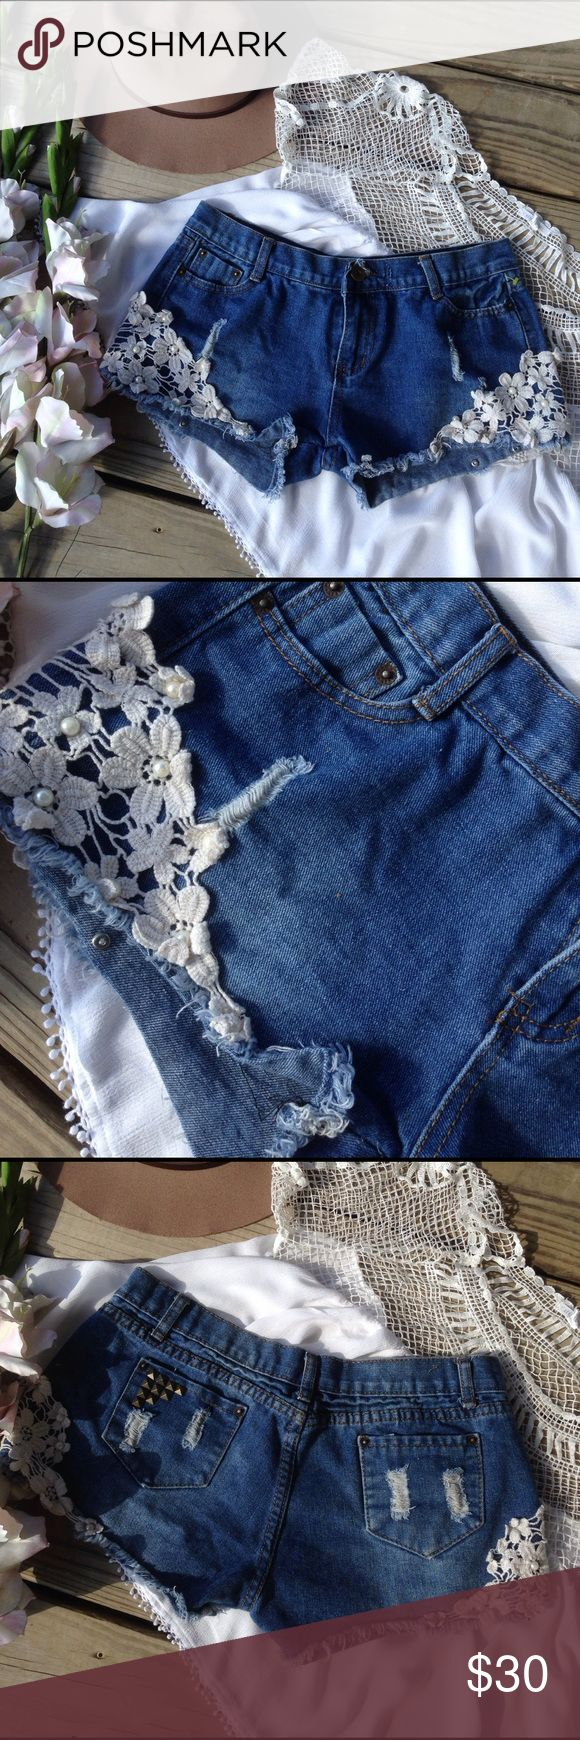 "Adorable Lace & Pearl Trim Cutoff Jean Shorts No size listed so Ill list the measurements below.34"" waist length 11-11.5"". Inseam 2-2-5""   No flaws free gift with purchase these do run very small Shorts Jean Shorts"